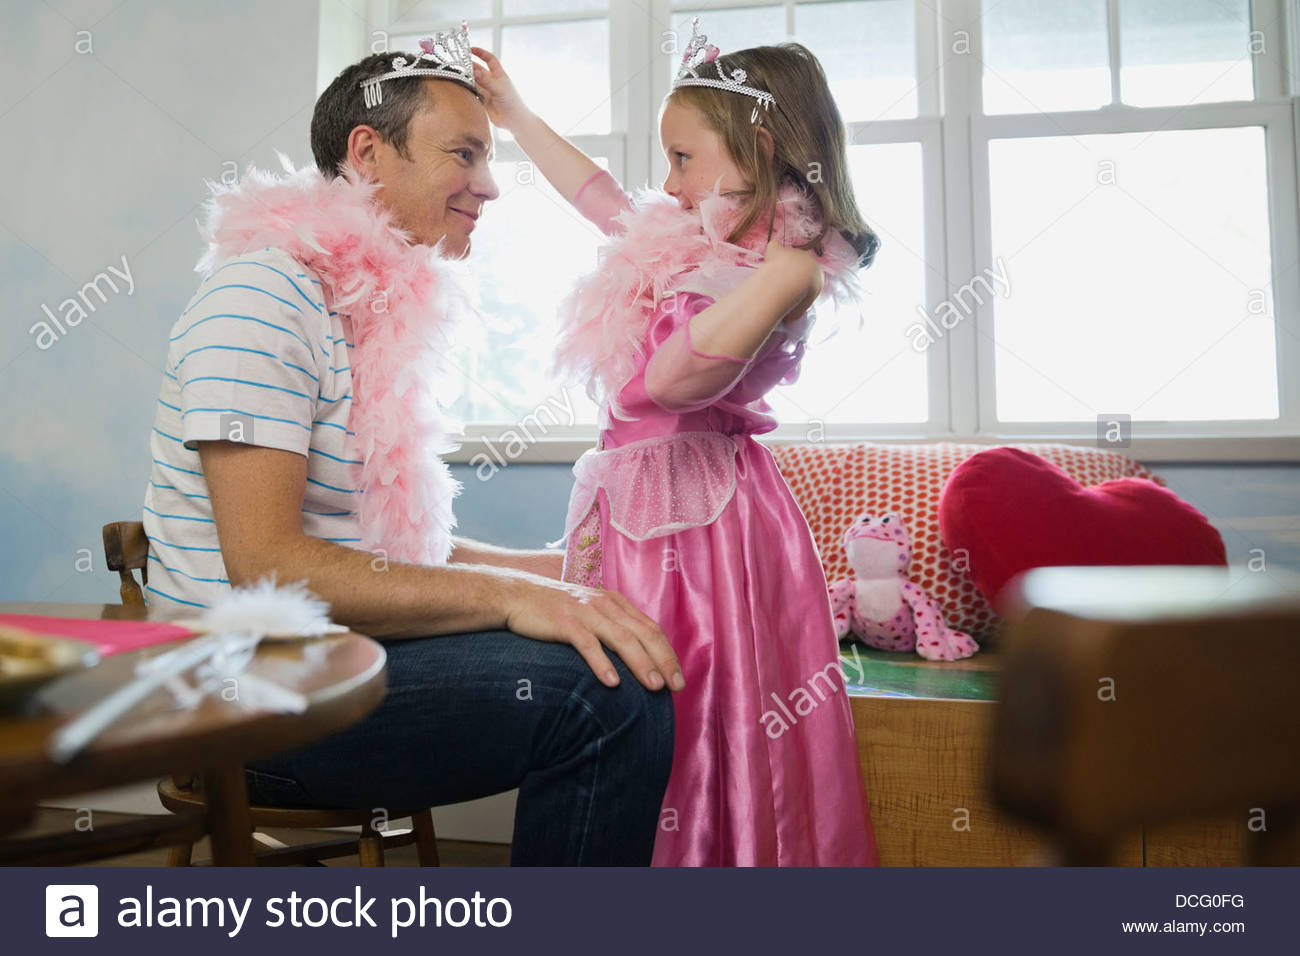 Little girl putting tiara on her dad - Stock Image